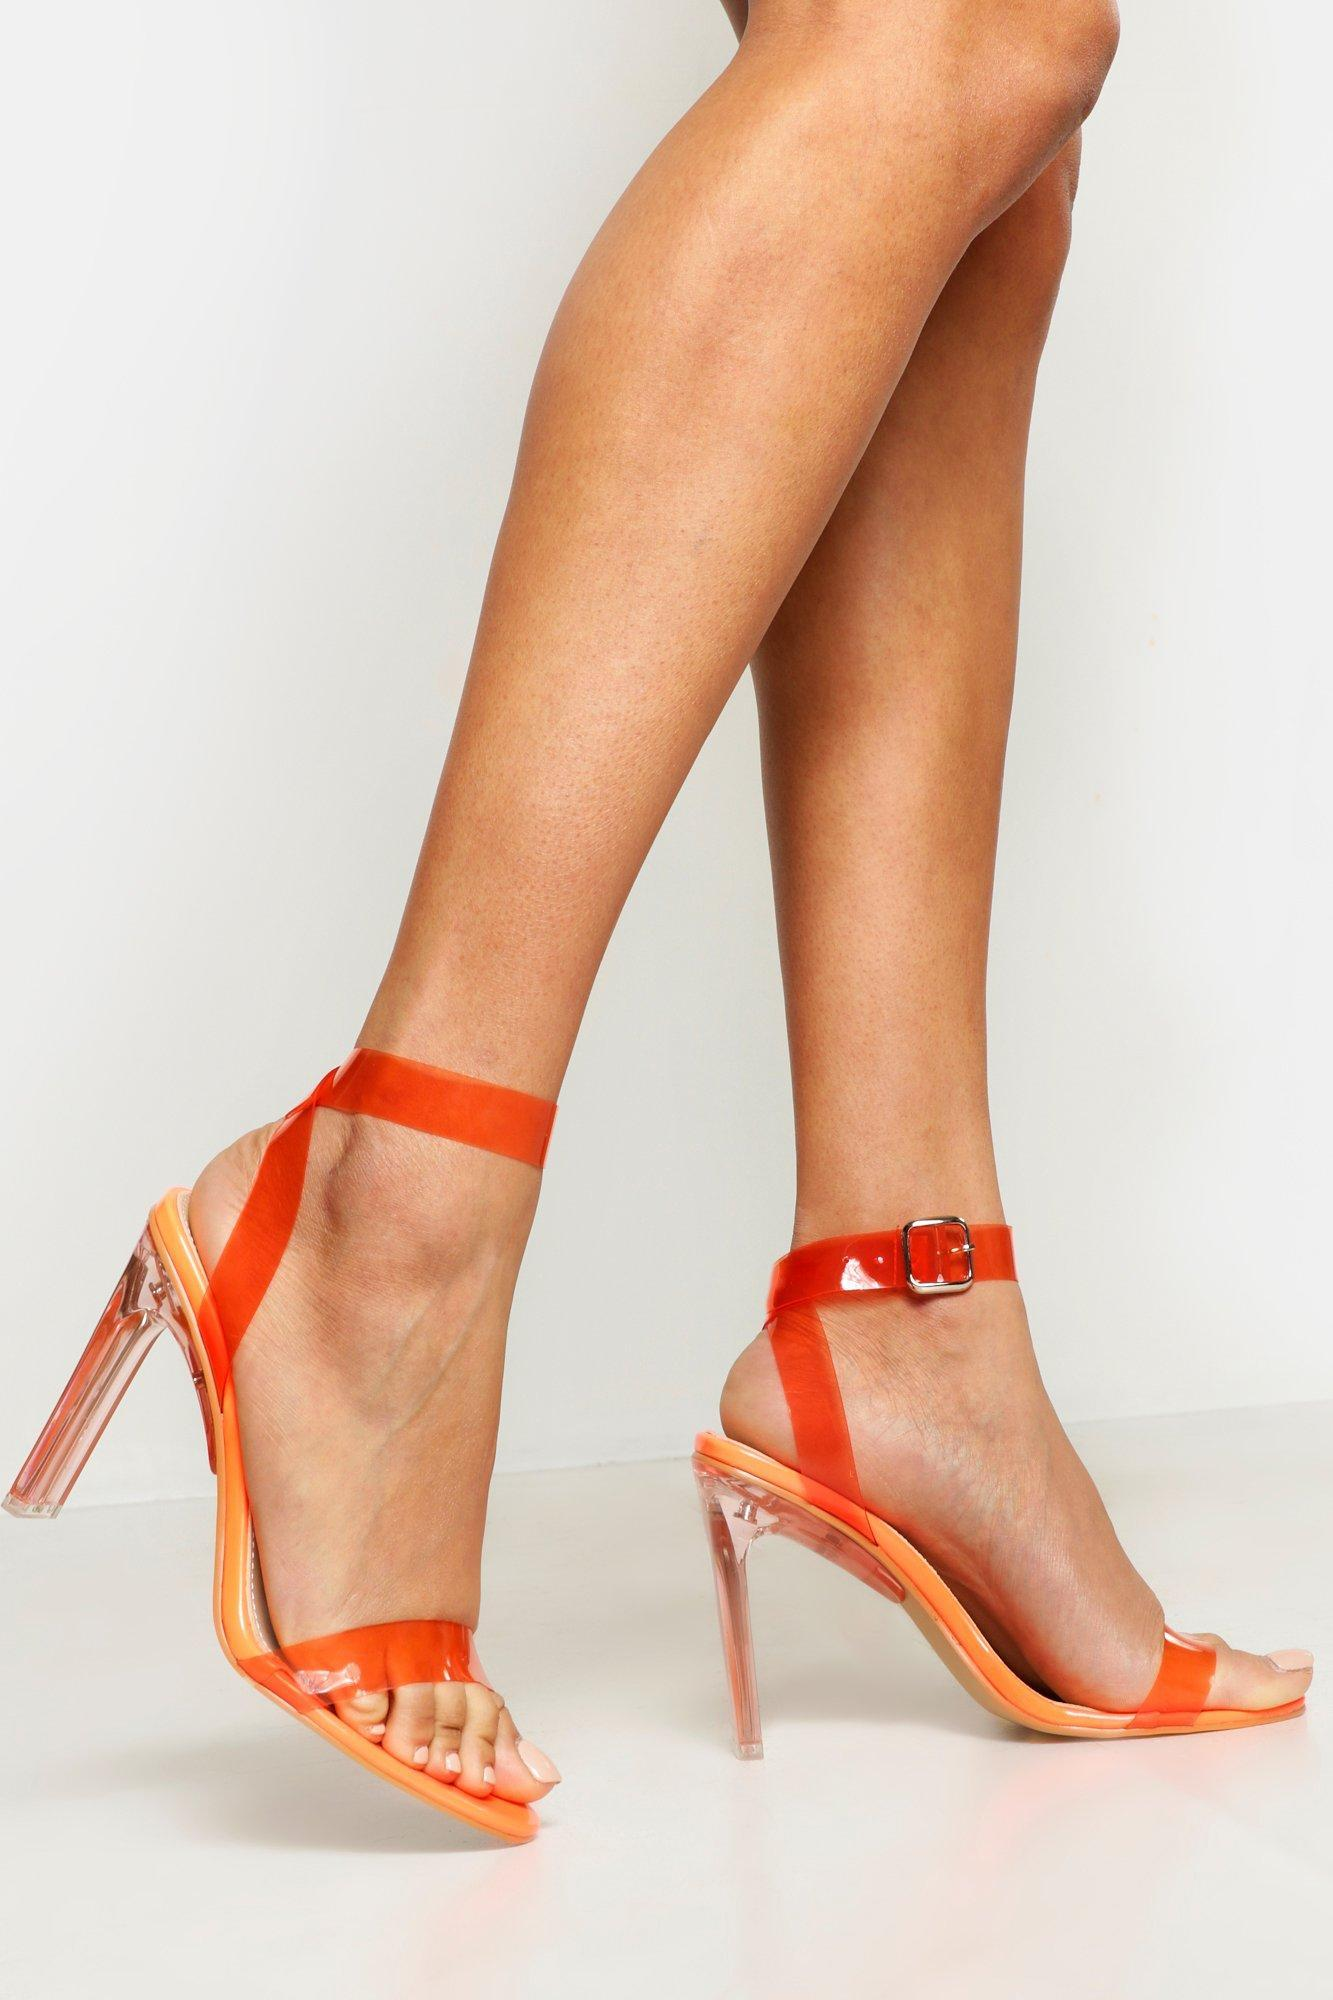 75d9b743af81 Boohoo Clear Heel 2 Part Heels in Orange - Lyst